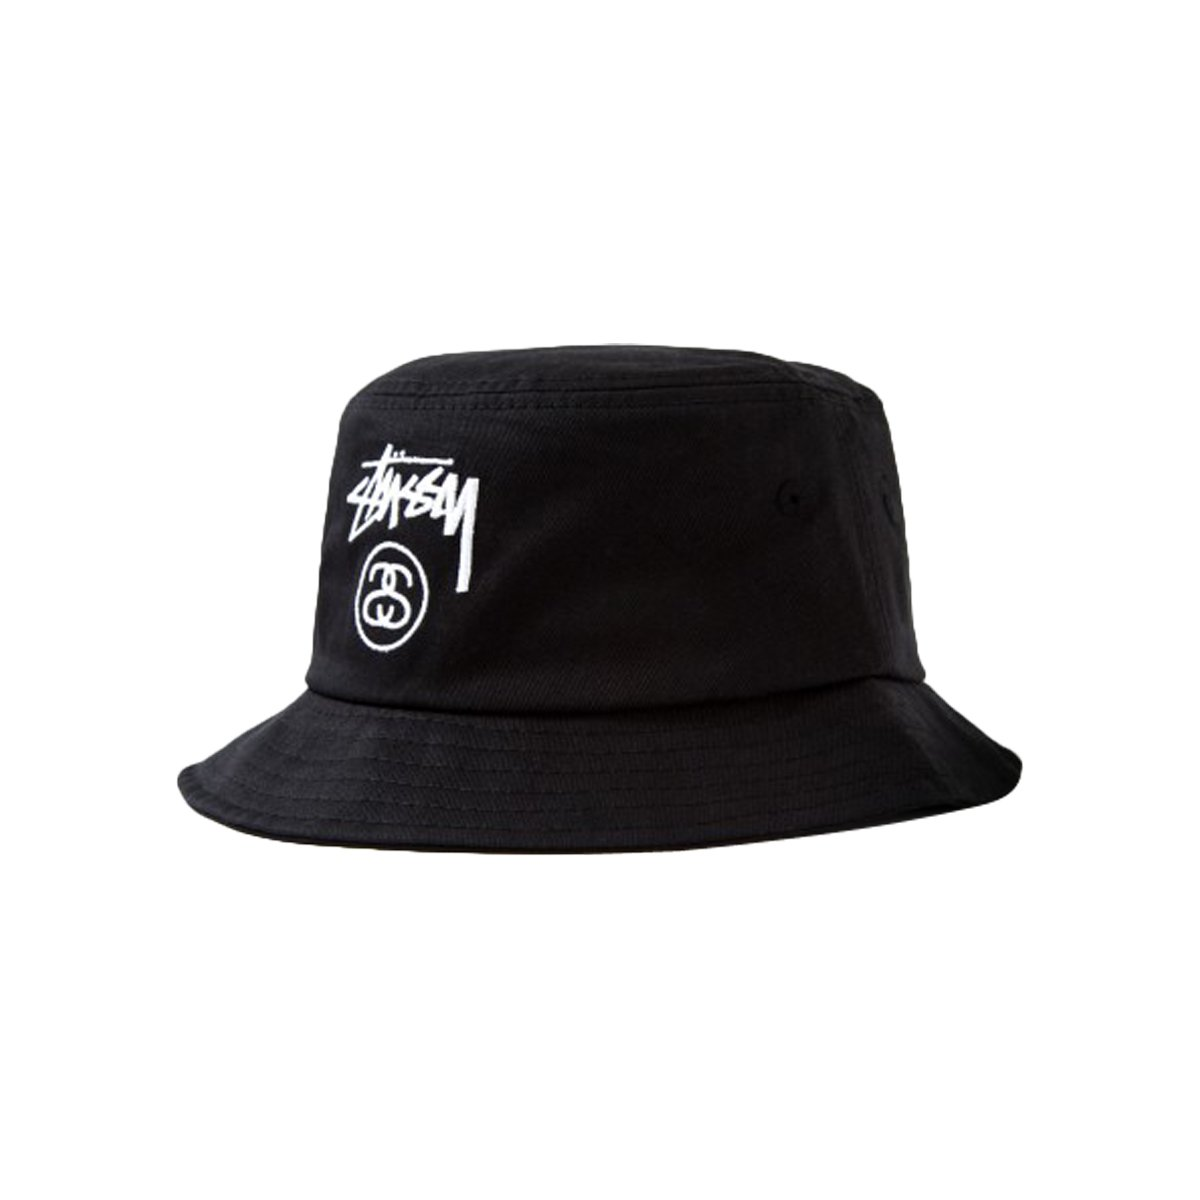 6c0f61ae34a Stussy Mens Stock Lock FA14 Bucket Hat Cap